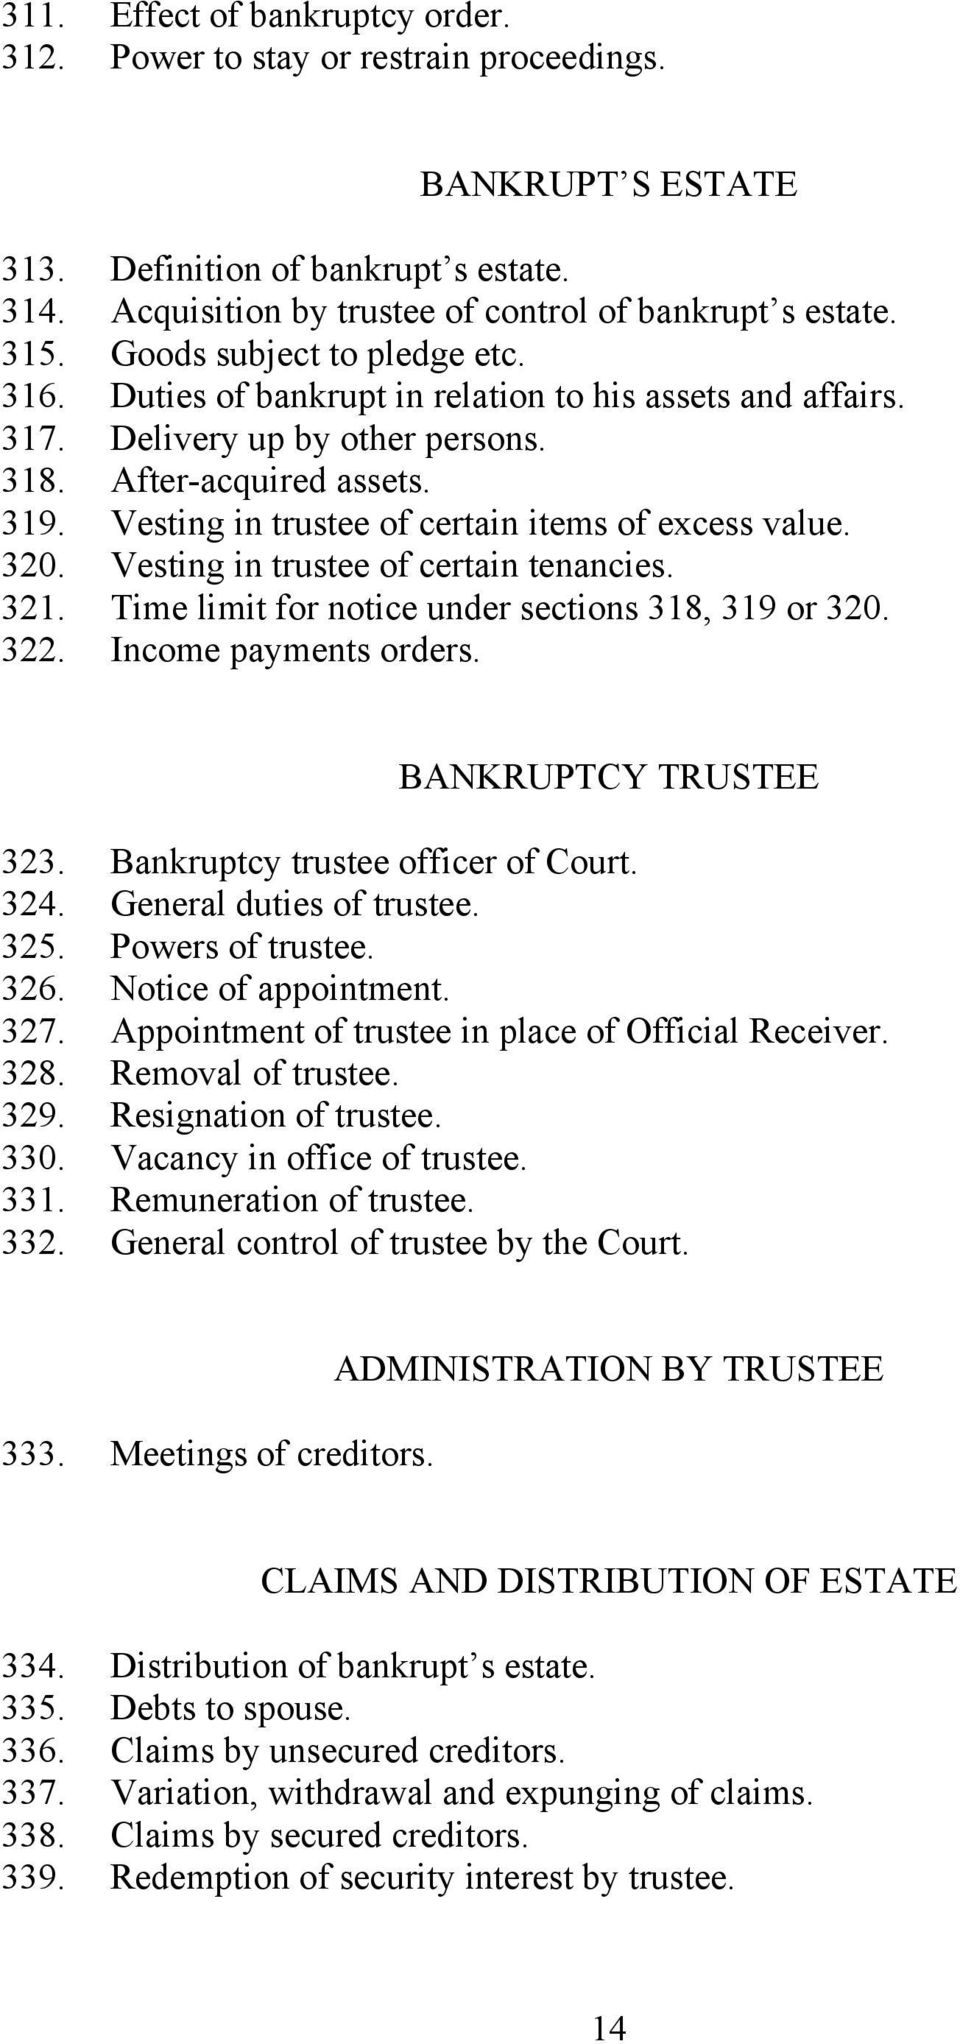 Vesting in trustee of certain items of excess value. 320. Vesting in trustee of certain tenancies. 321. Time limit for notice under sections 318, 319 or 320. 322. Income payments orders.